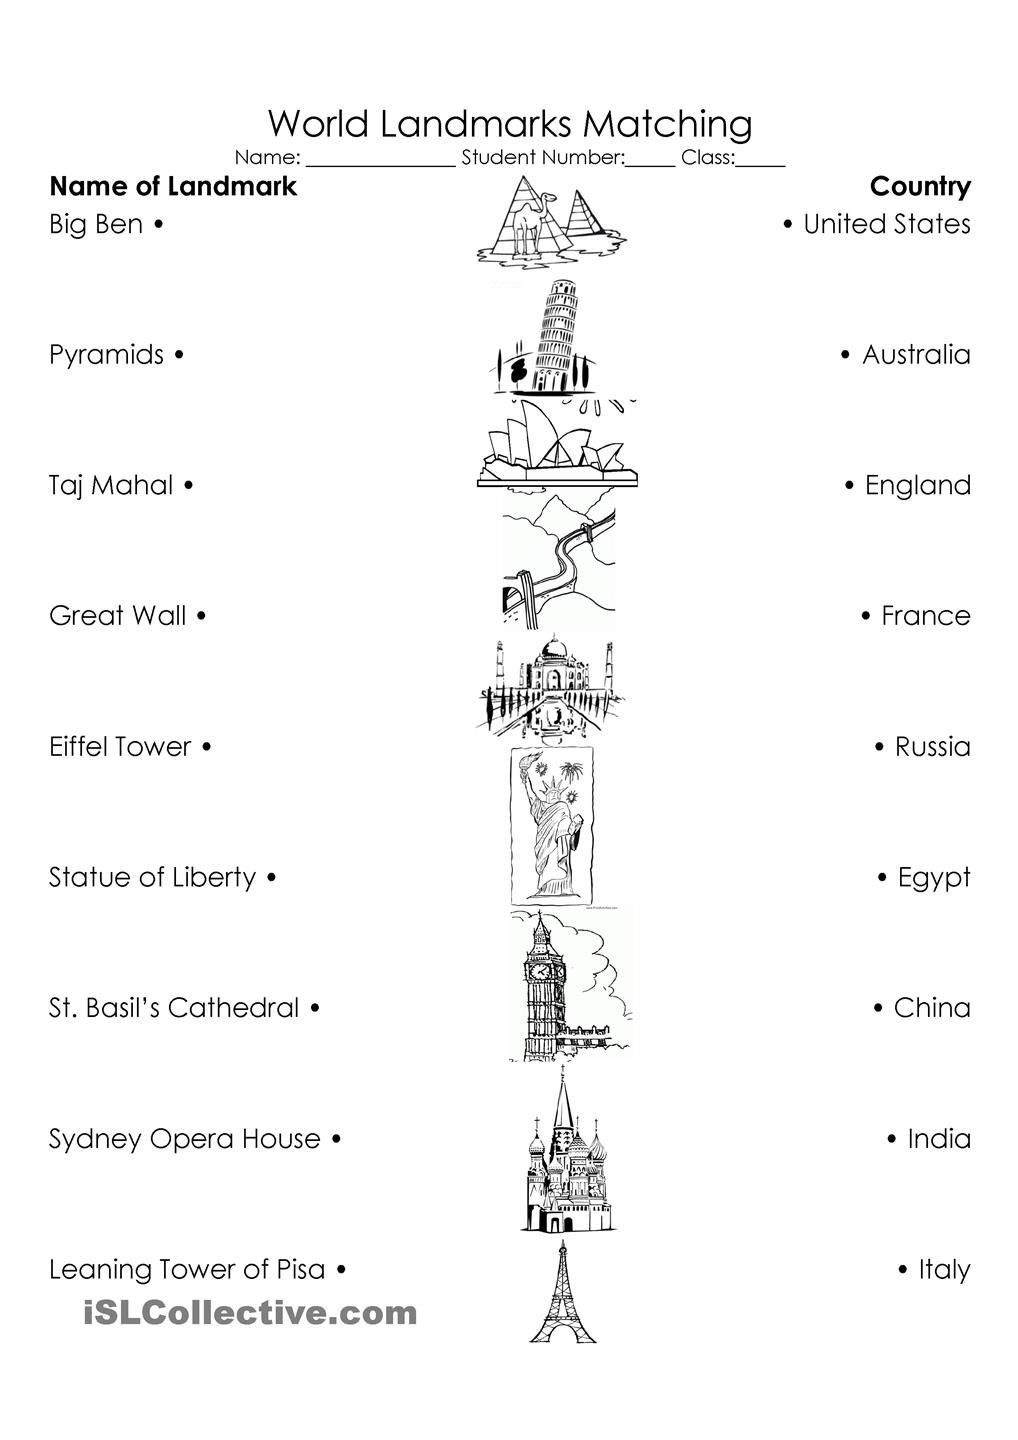 First Grade social Studies Worksheets World Landmarks Triple Match